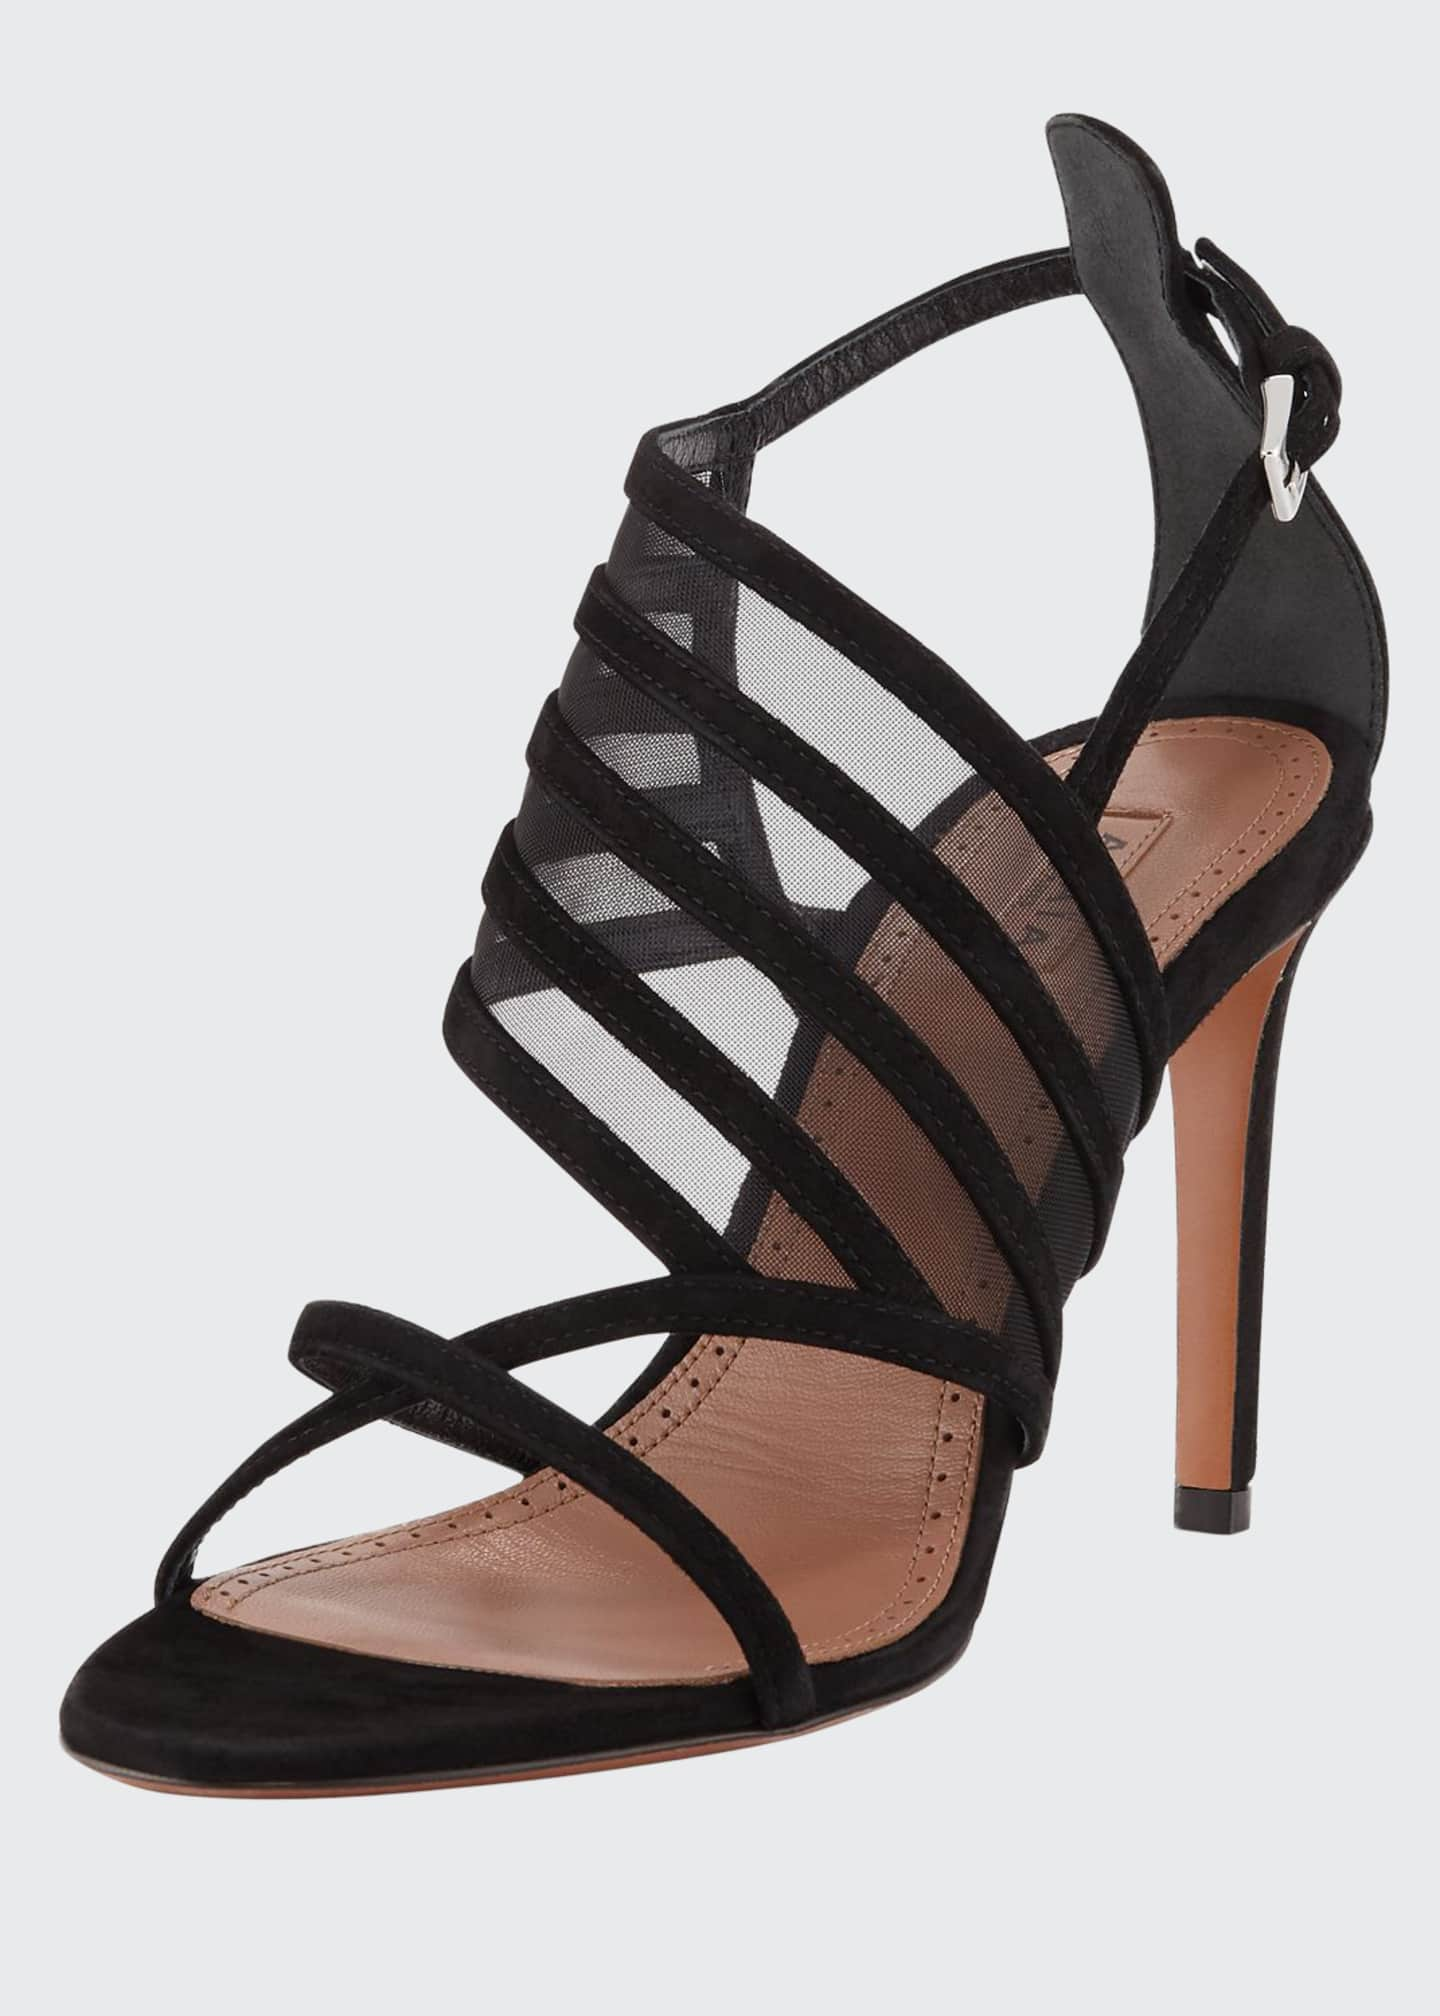 ALAIA Banded Suede Sandals